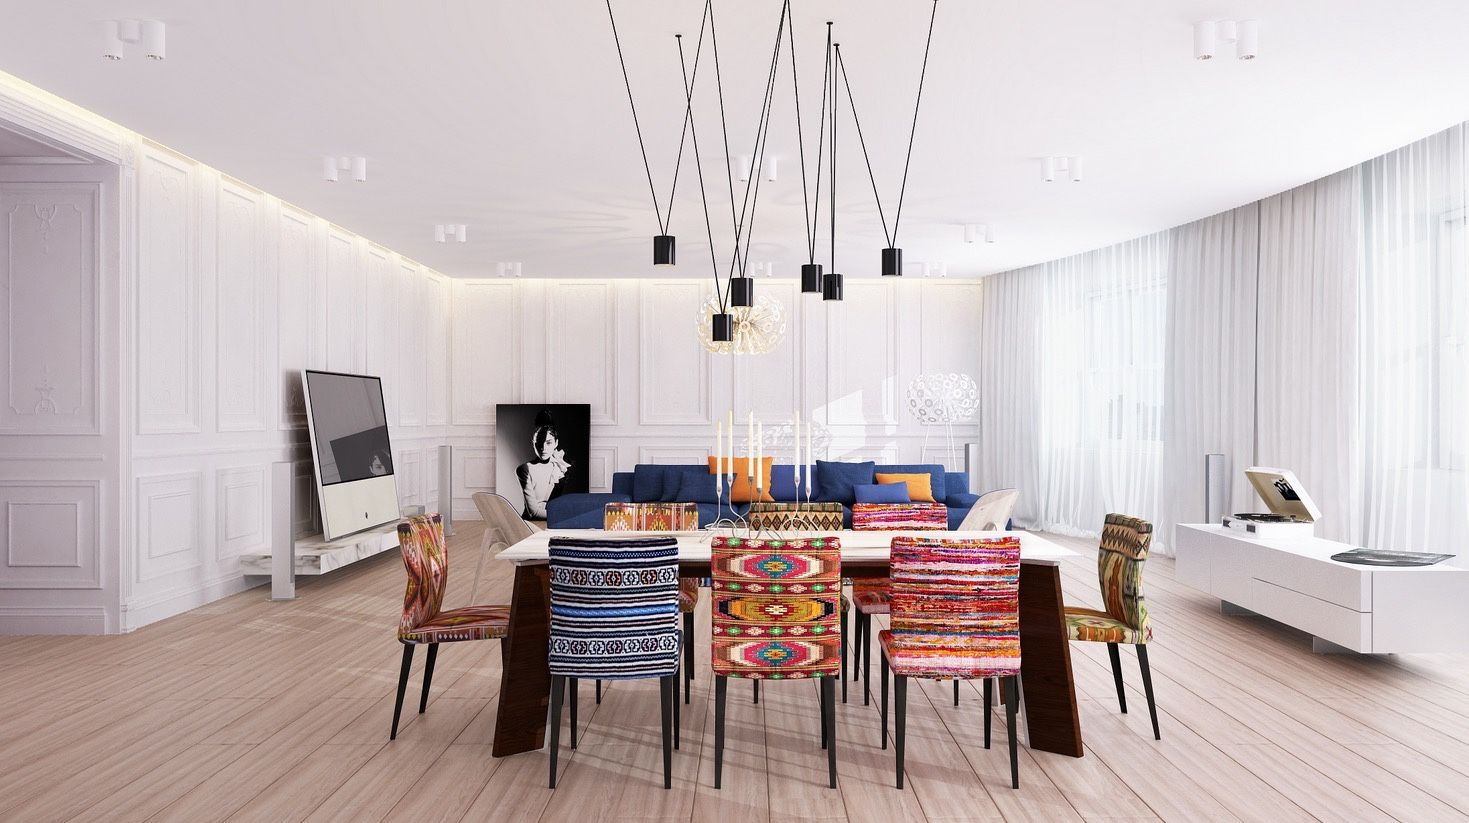 Eclectic Dining Room With Colorful Chairs